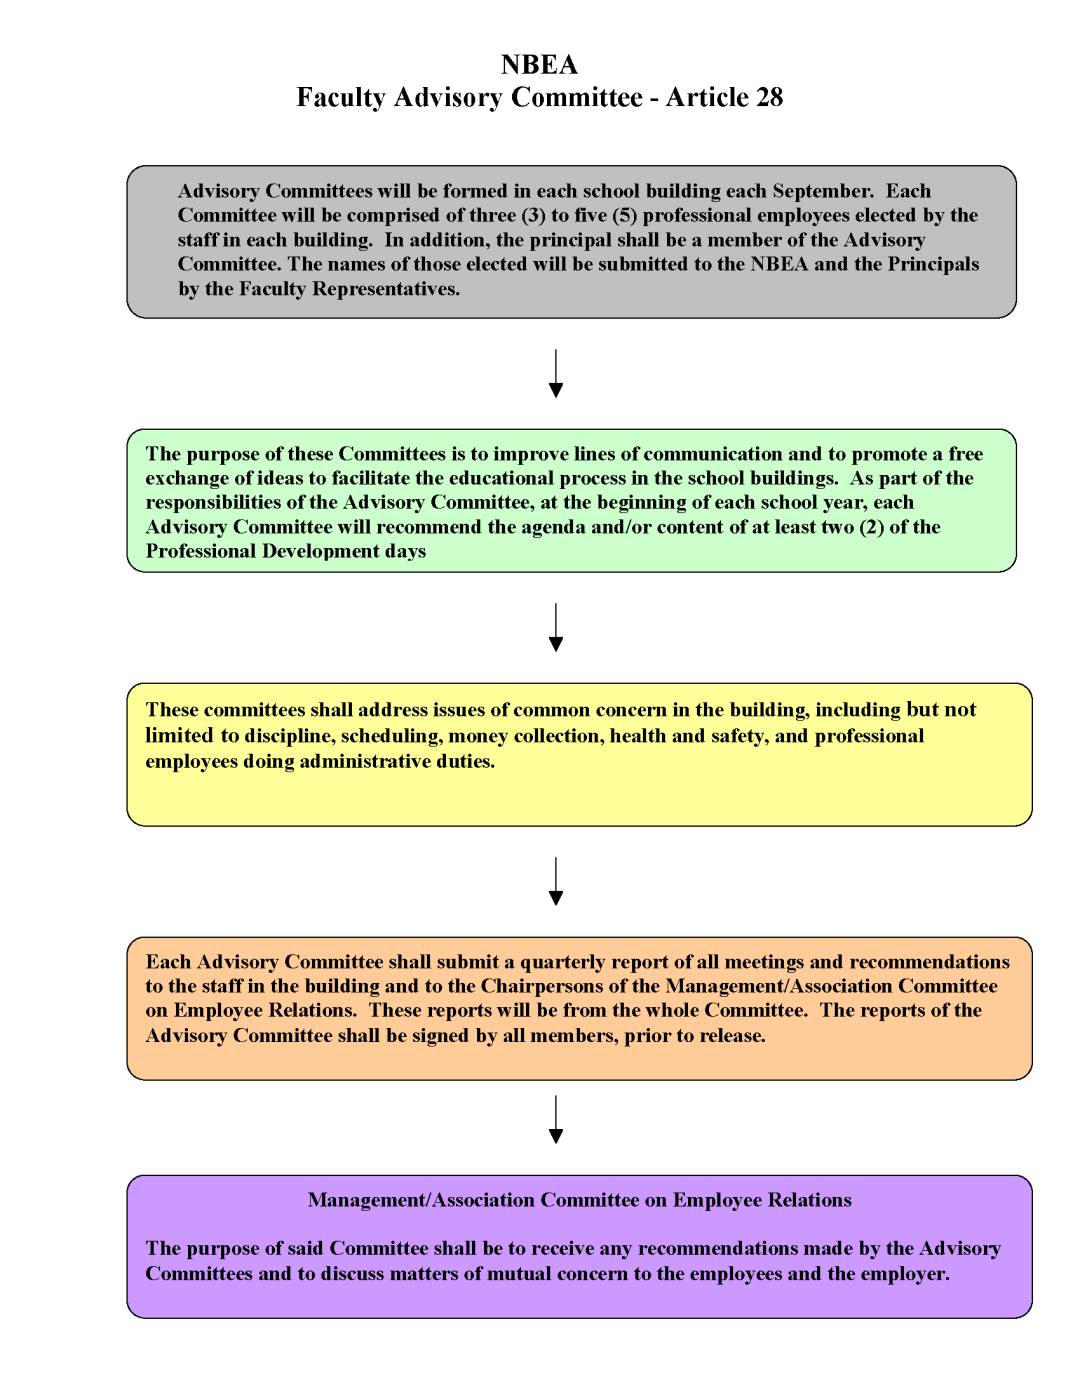 Faculty_Advisory_Committee_Flow_Chart